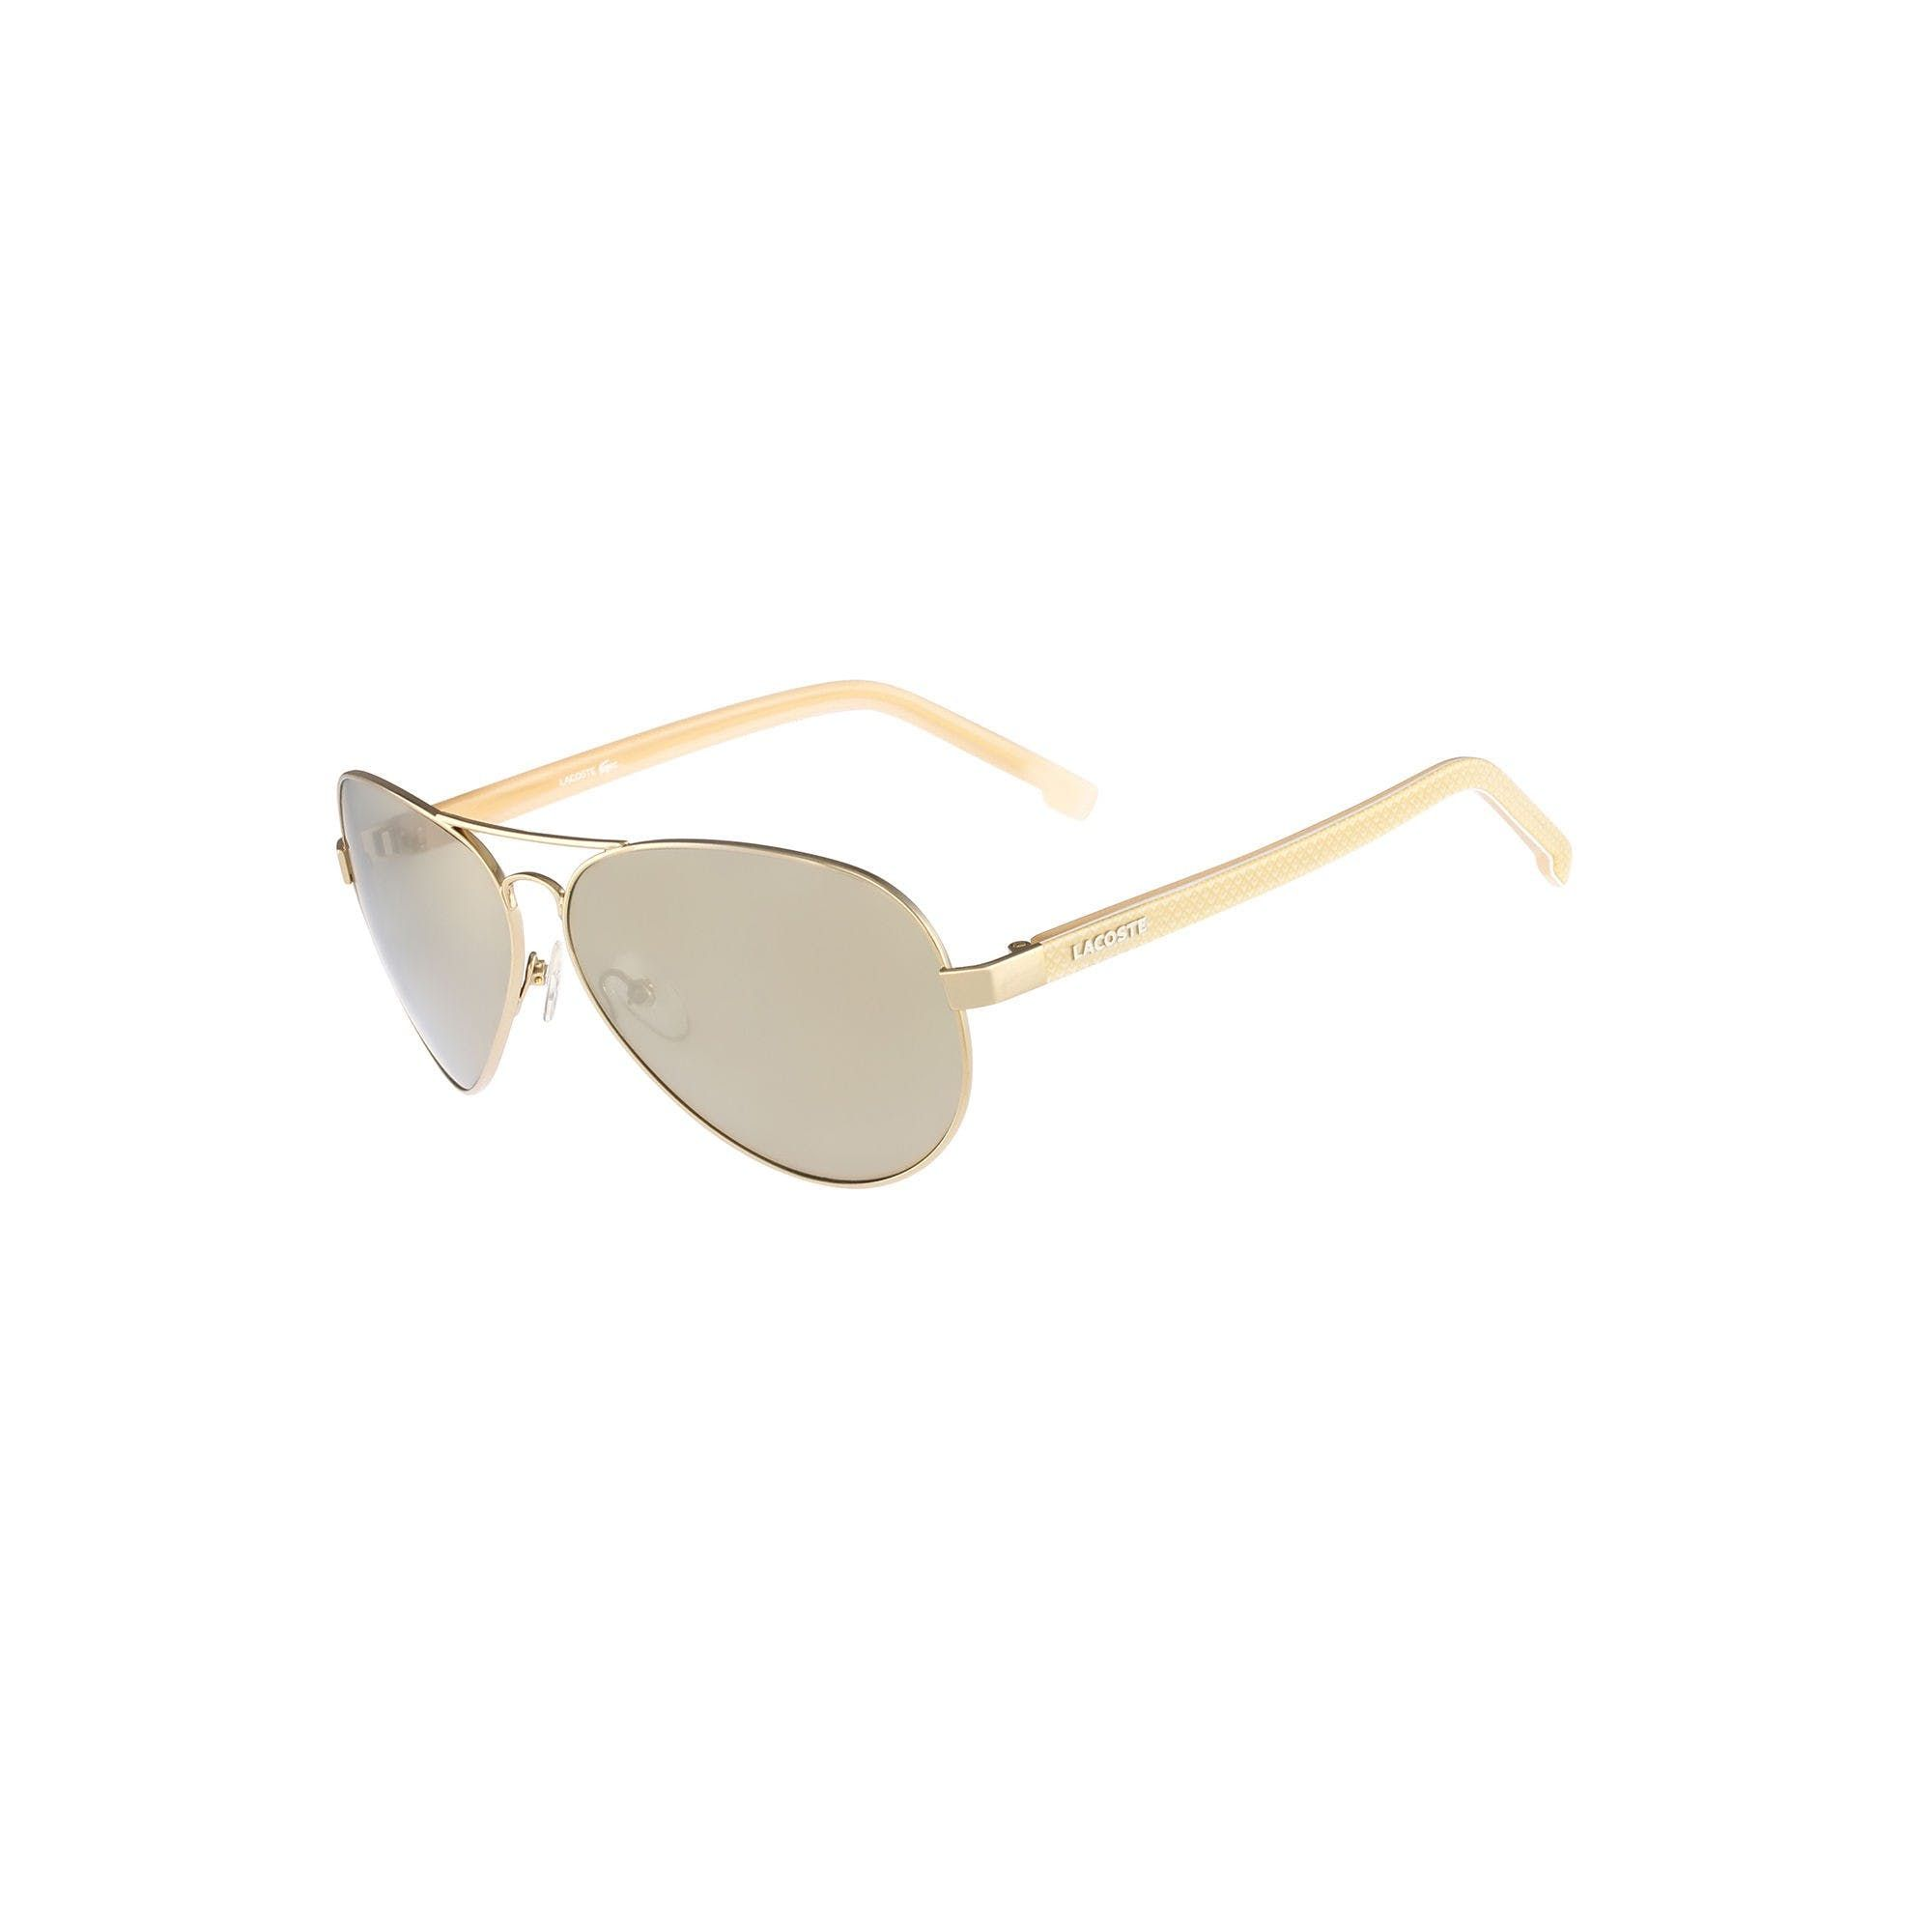 e2753a0282 Unisex Aviator Sunglasses - GOLD by Lacoste